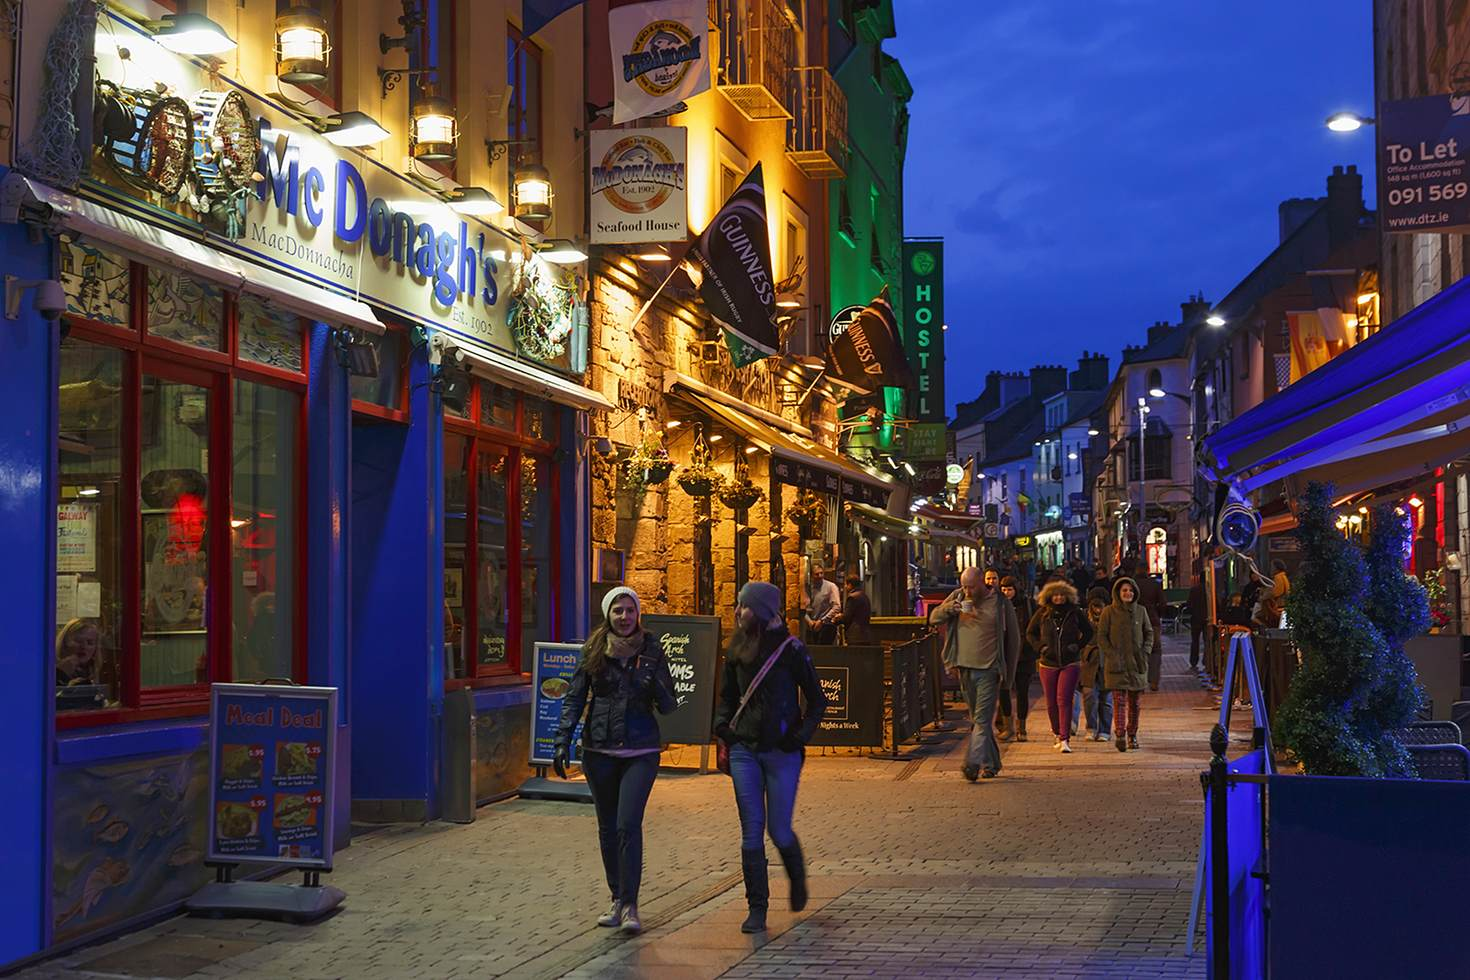 Galway city is a swirl of enticing old pubs humming with trad music sessions